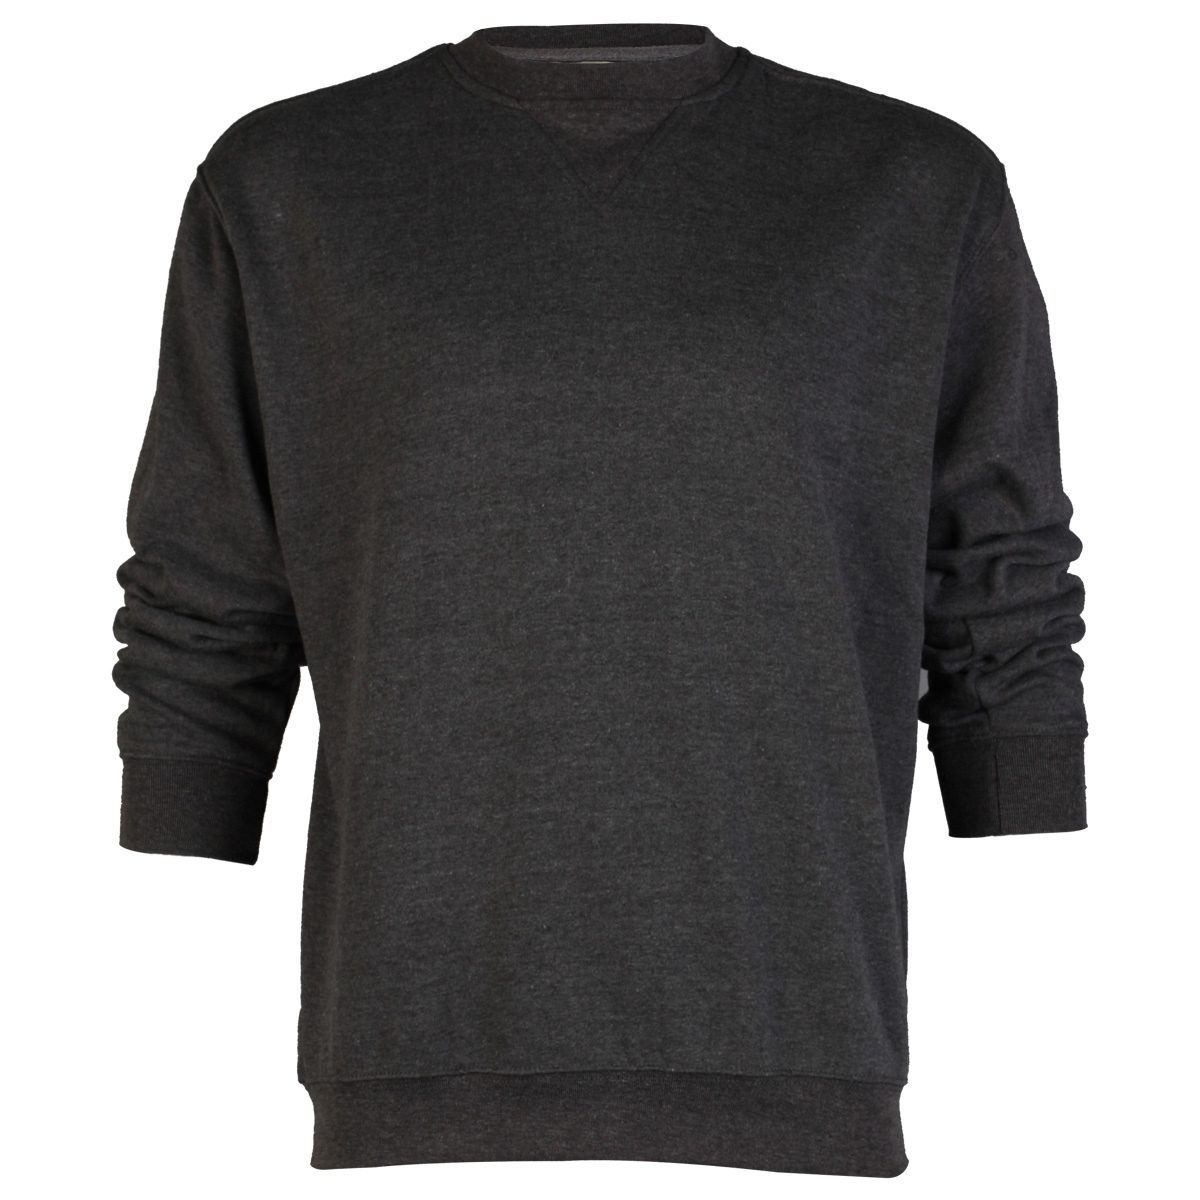 E22-NEW-MENS-KAM-JEANS-K502S-CREW-NECK-PULLOVER-SWEATSHIRT-JUMPER-TOP-SIZE-S-XXL